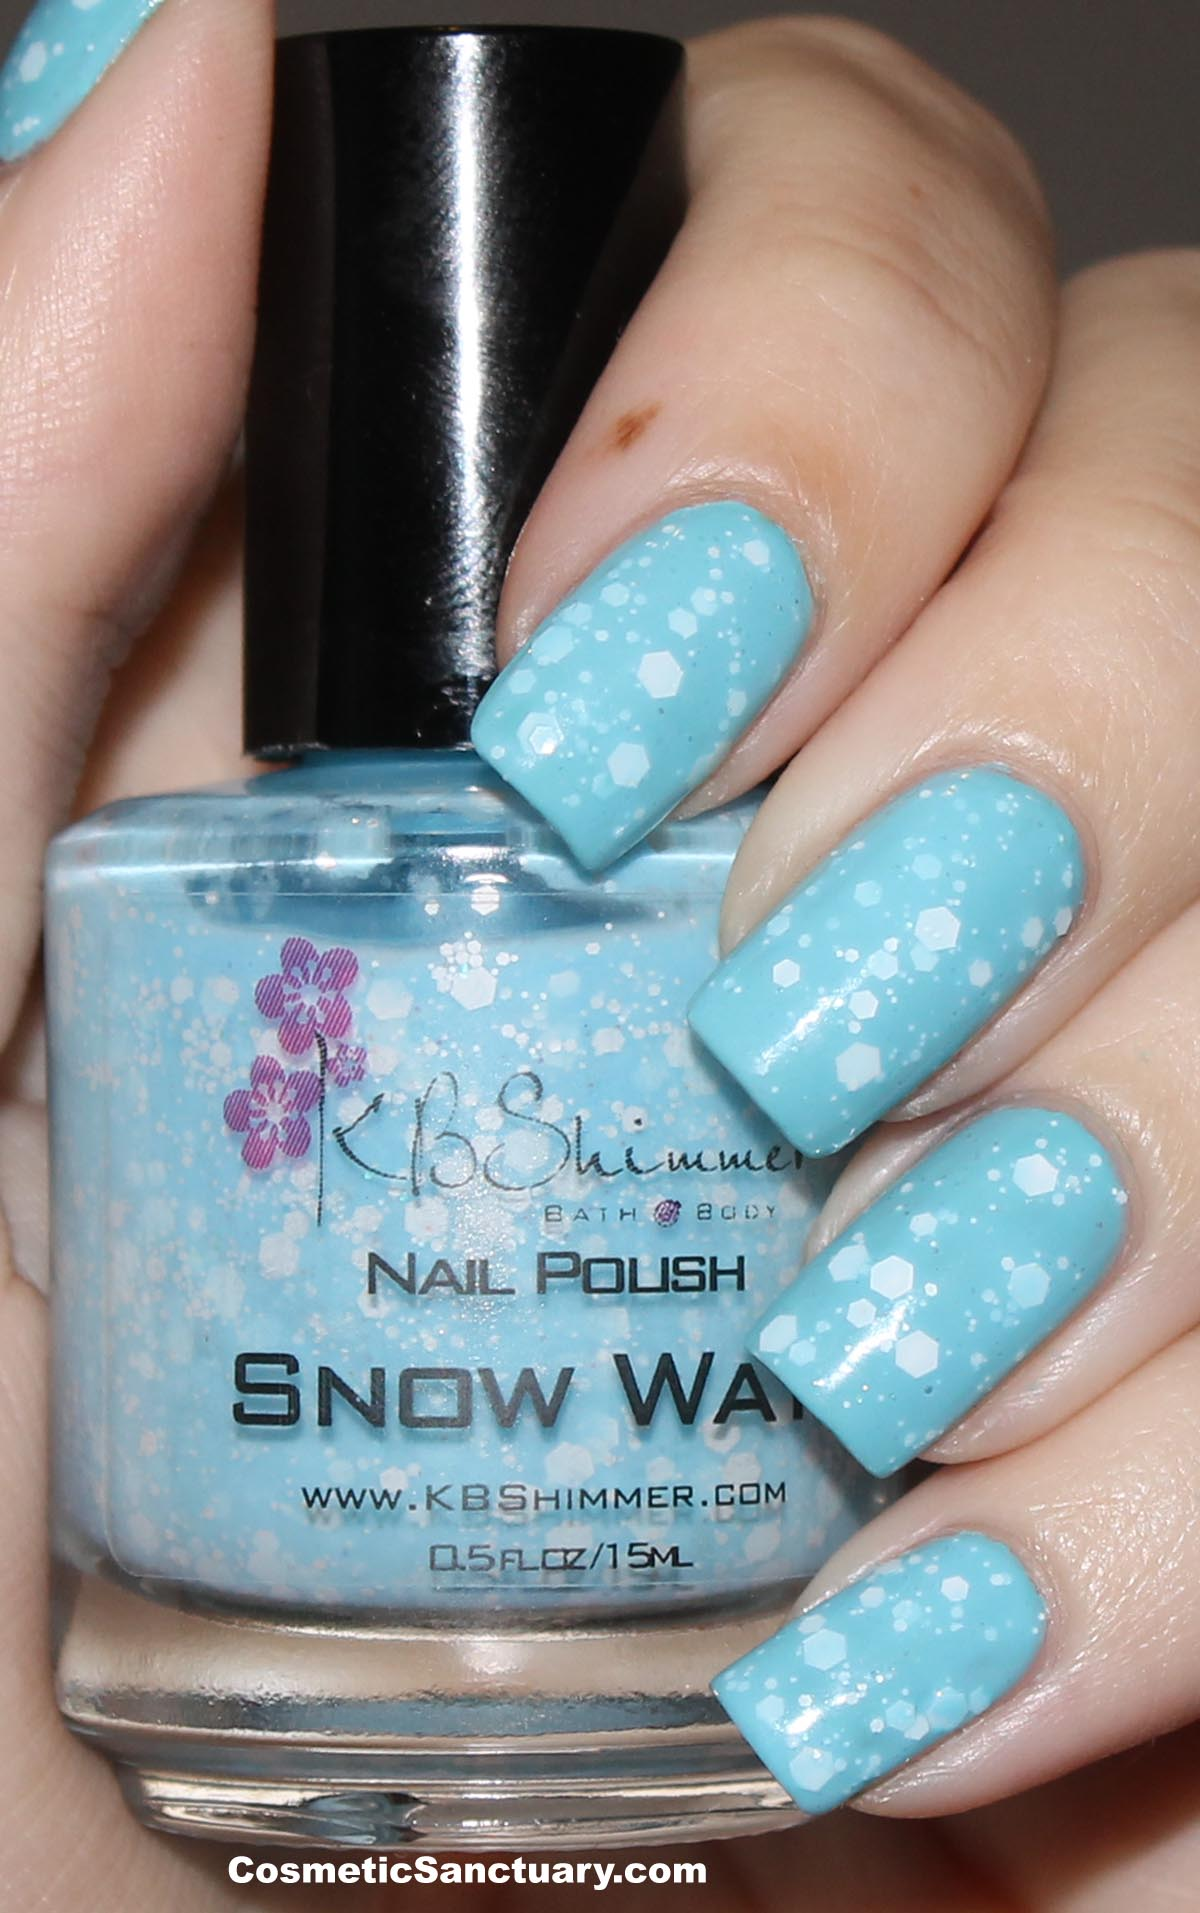 KBShimmer Winter 2012 Collection Swatches and Review